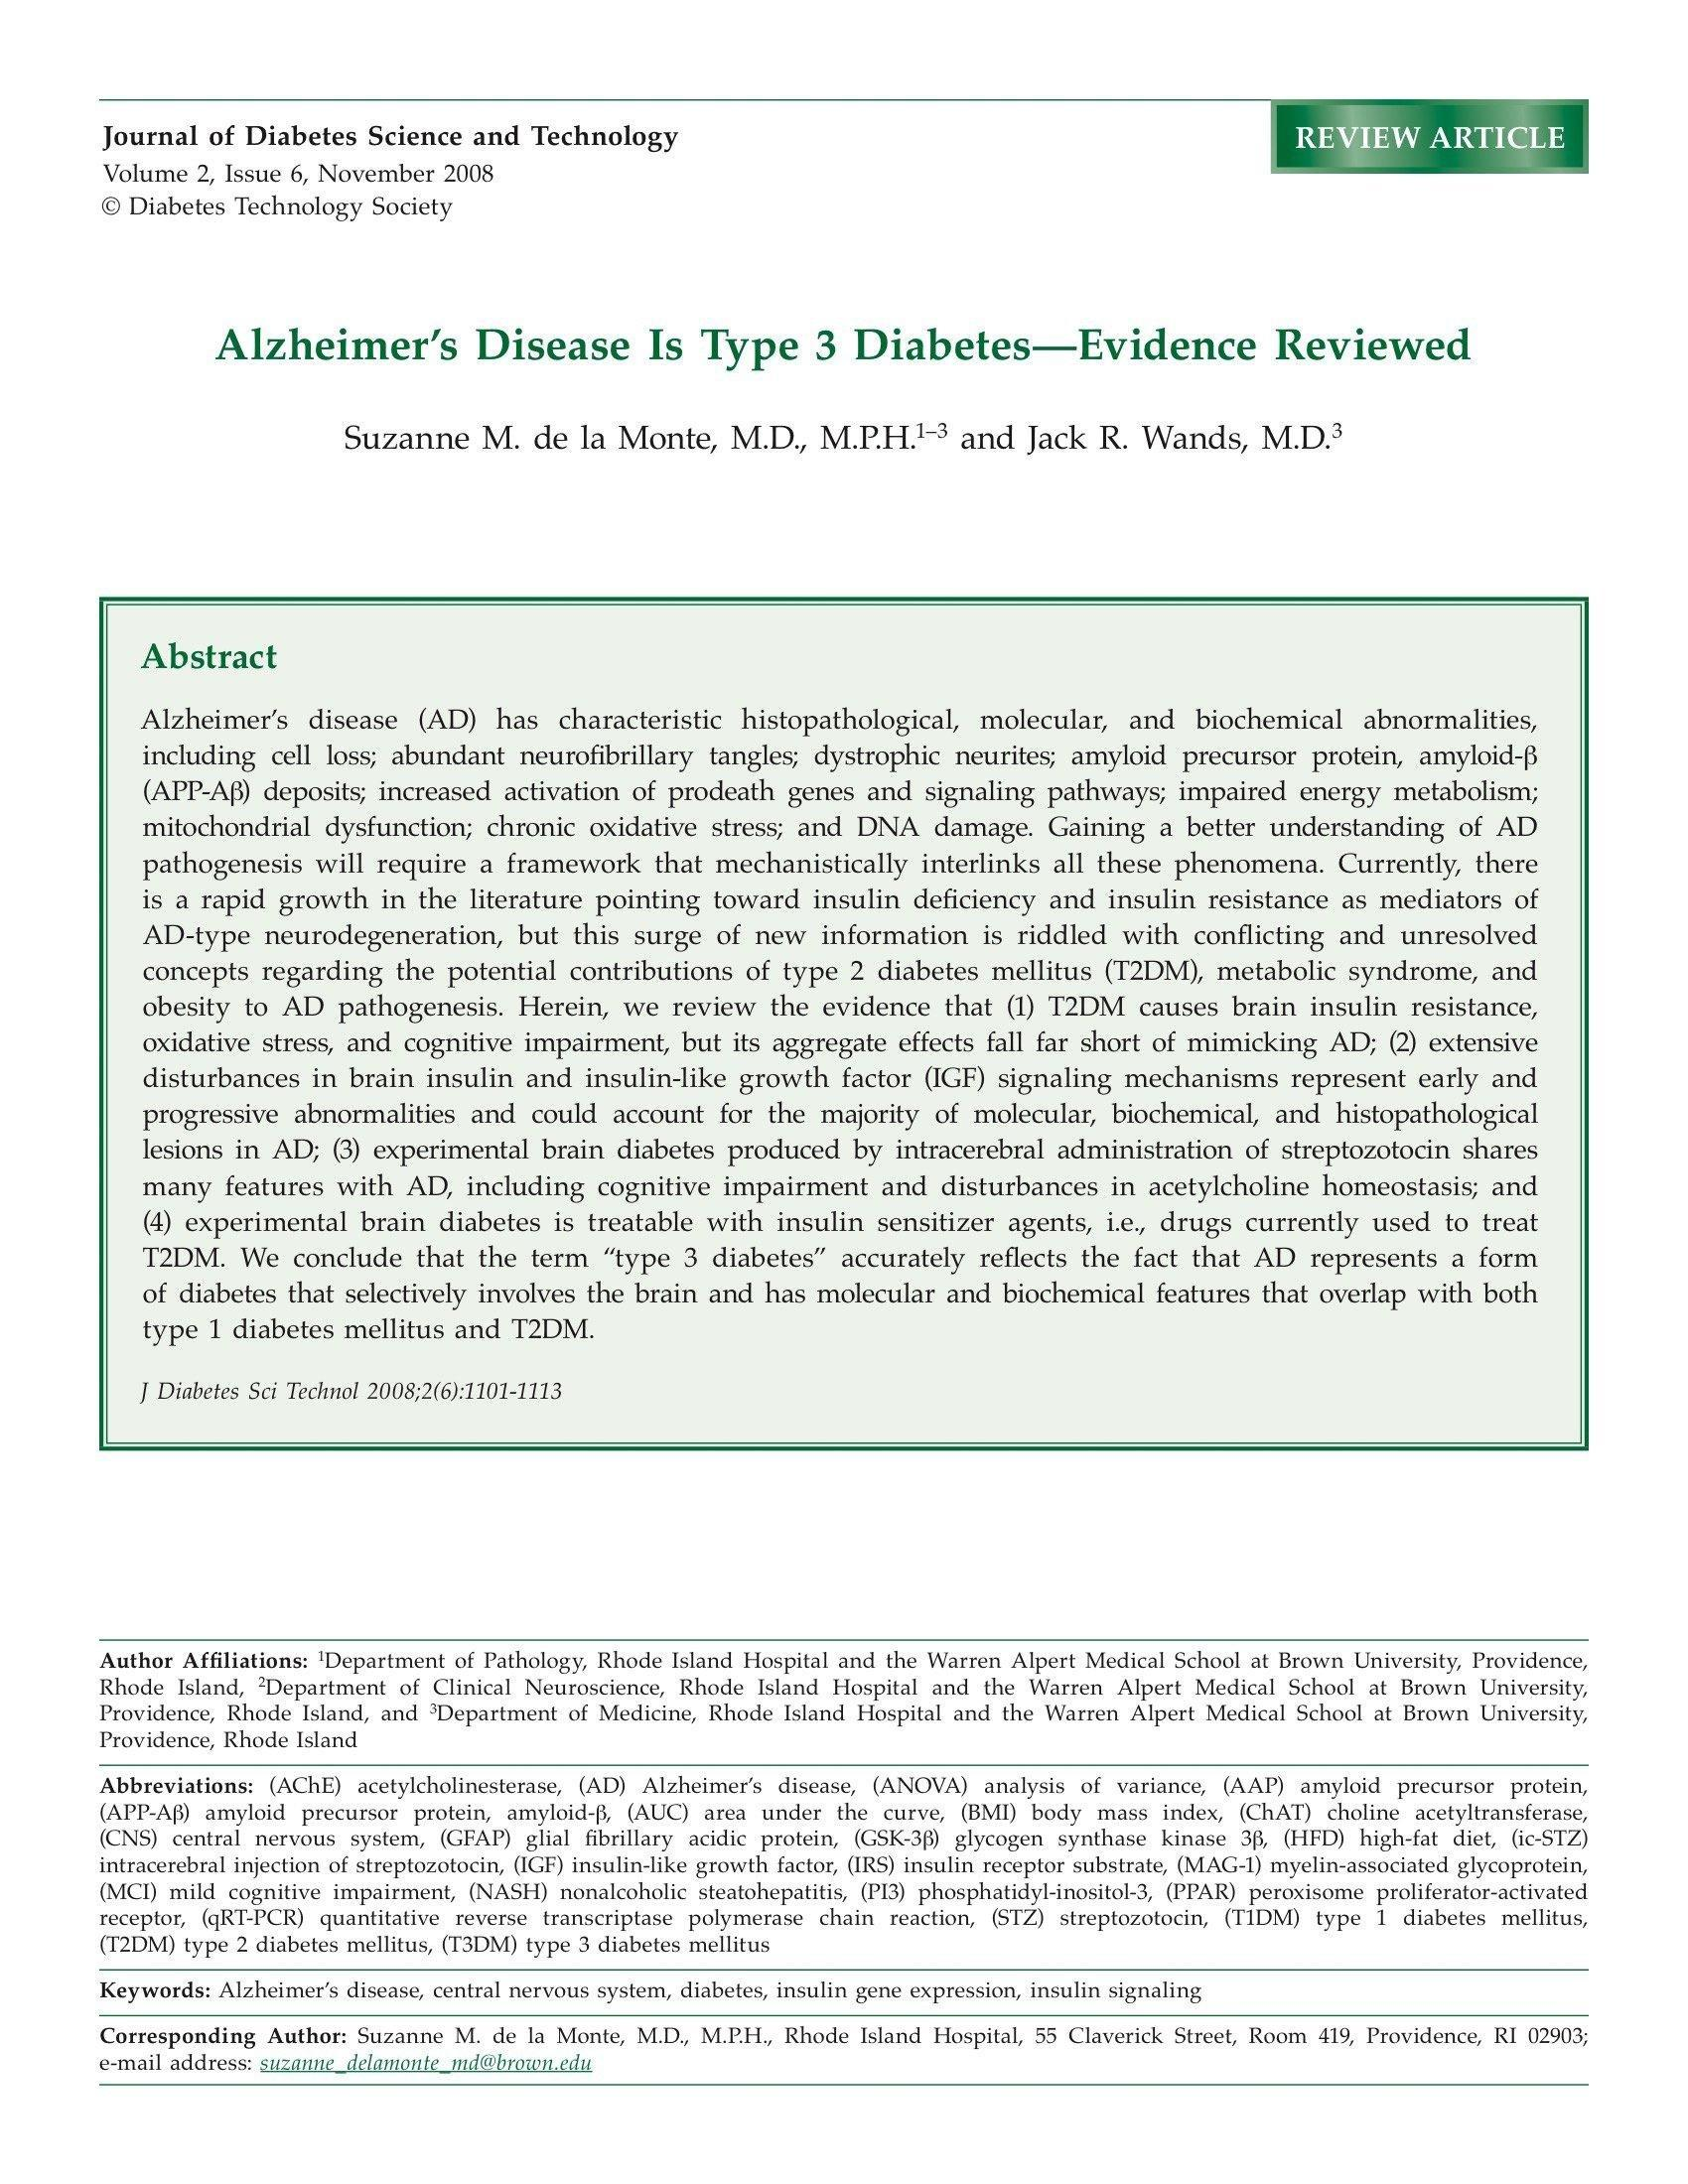 Just Read: Alzheimers Disease Is Type 3 DiabetesEvidence Reviewed